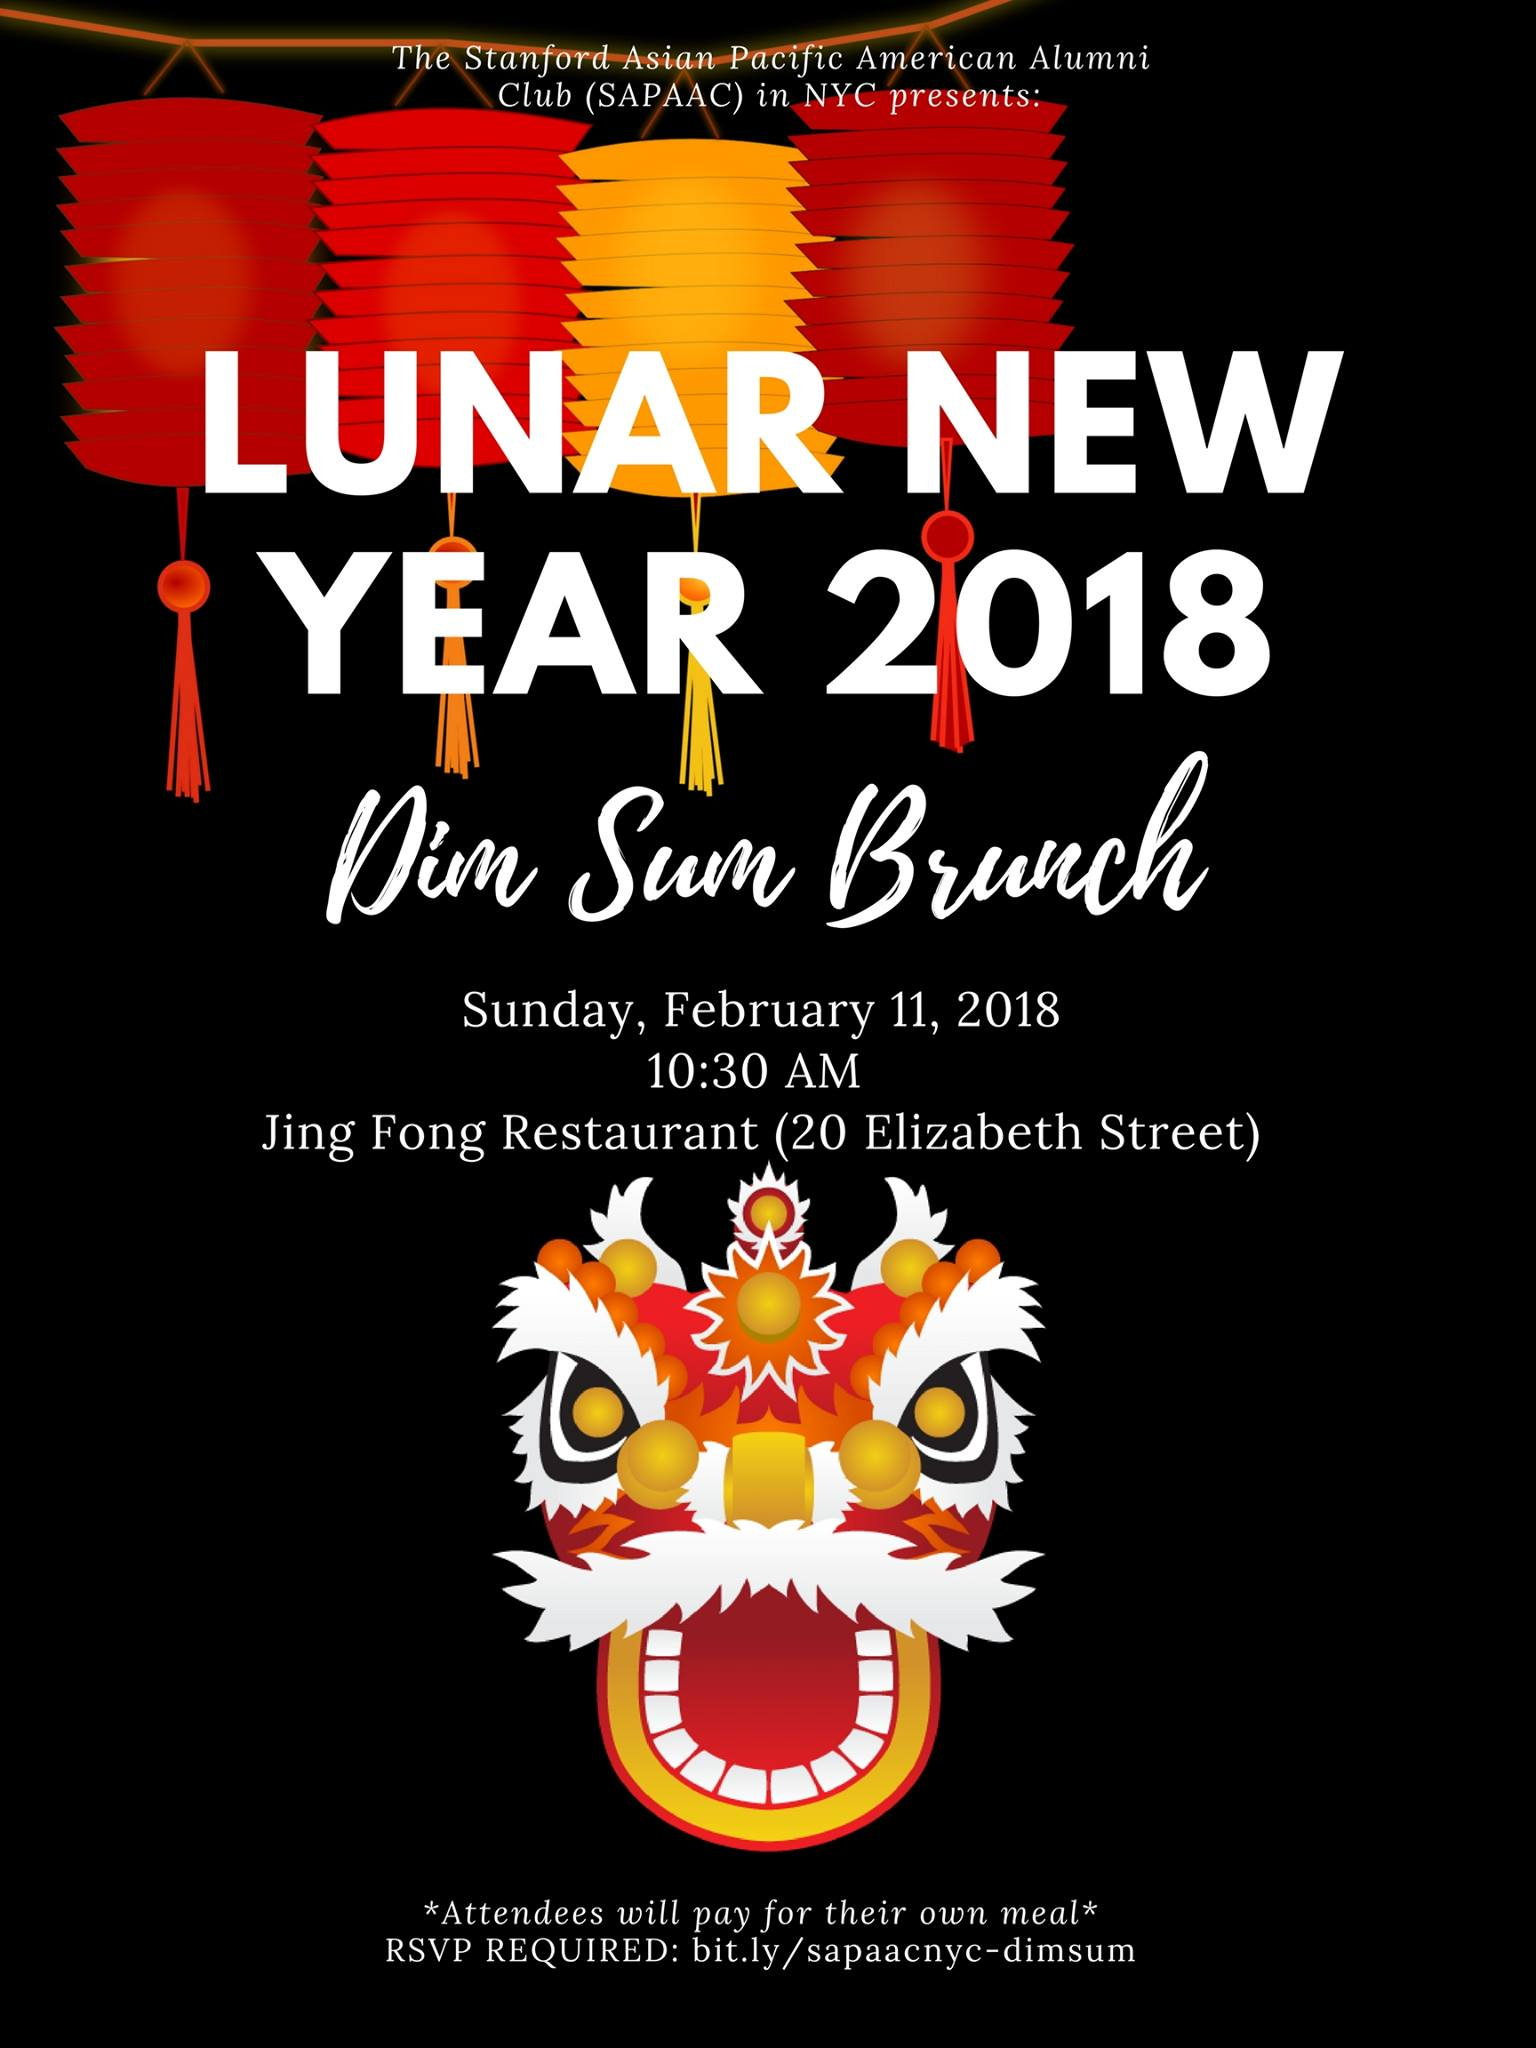 Sunday, February 11, 2018, 10:30 AM Jing Fong Restaurant   20 Elizabeth Street  *Attendees will pay for their own meal   We invite all SAPAAC in NYC members and family/friends to join us for brunch to welcome the Year of the Dog. Please join us to celebrate, catch up, and meet new friends in the city. Eventbrite RSVPs are required ( bit.ly/sapaacnyc-dimsum ). Please RSVP by Friday, February 2 at NOON. All are welcome and encouraged to attend.